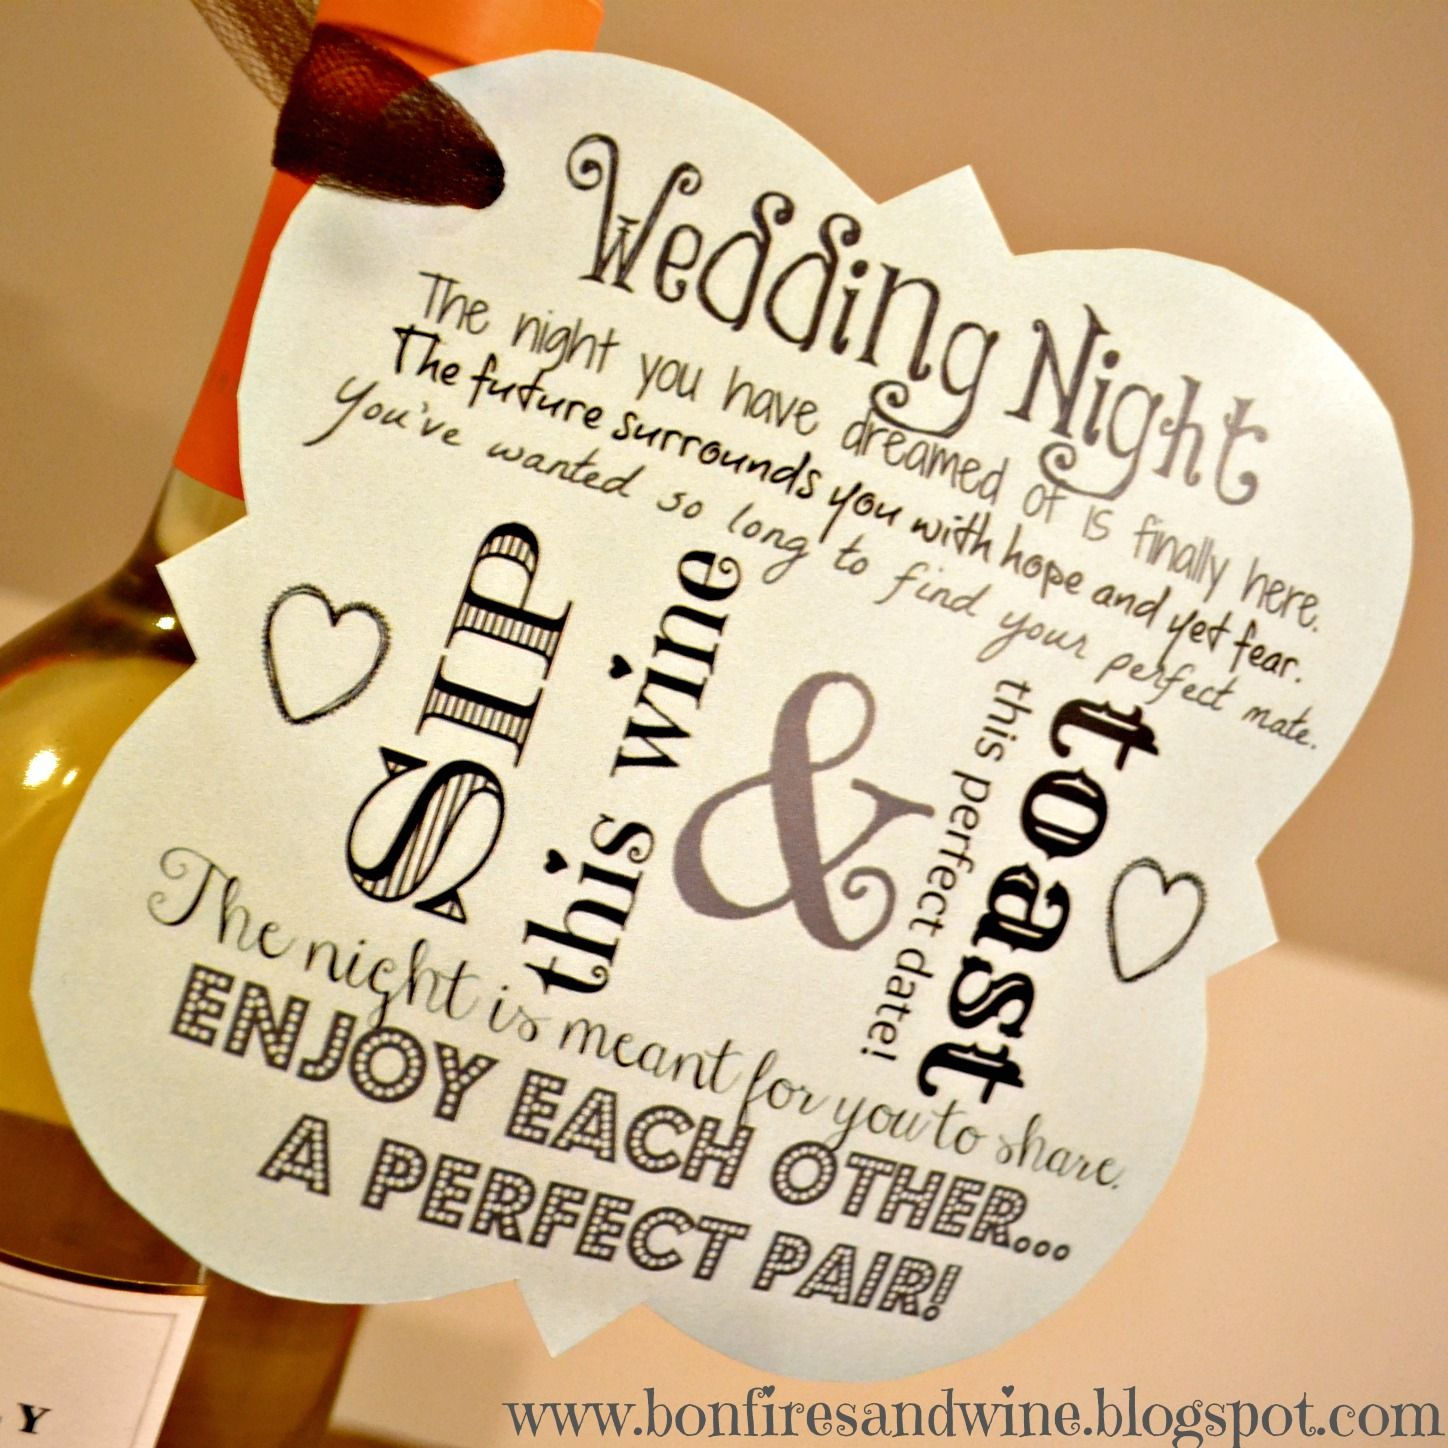 ... wedding shower gifts bridal gifts wine baskets wedding night wedding